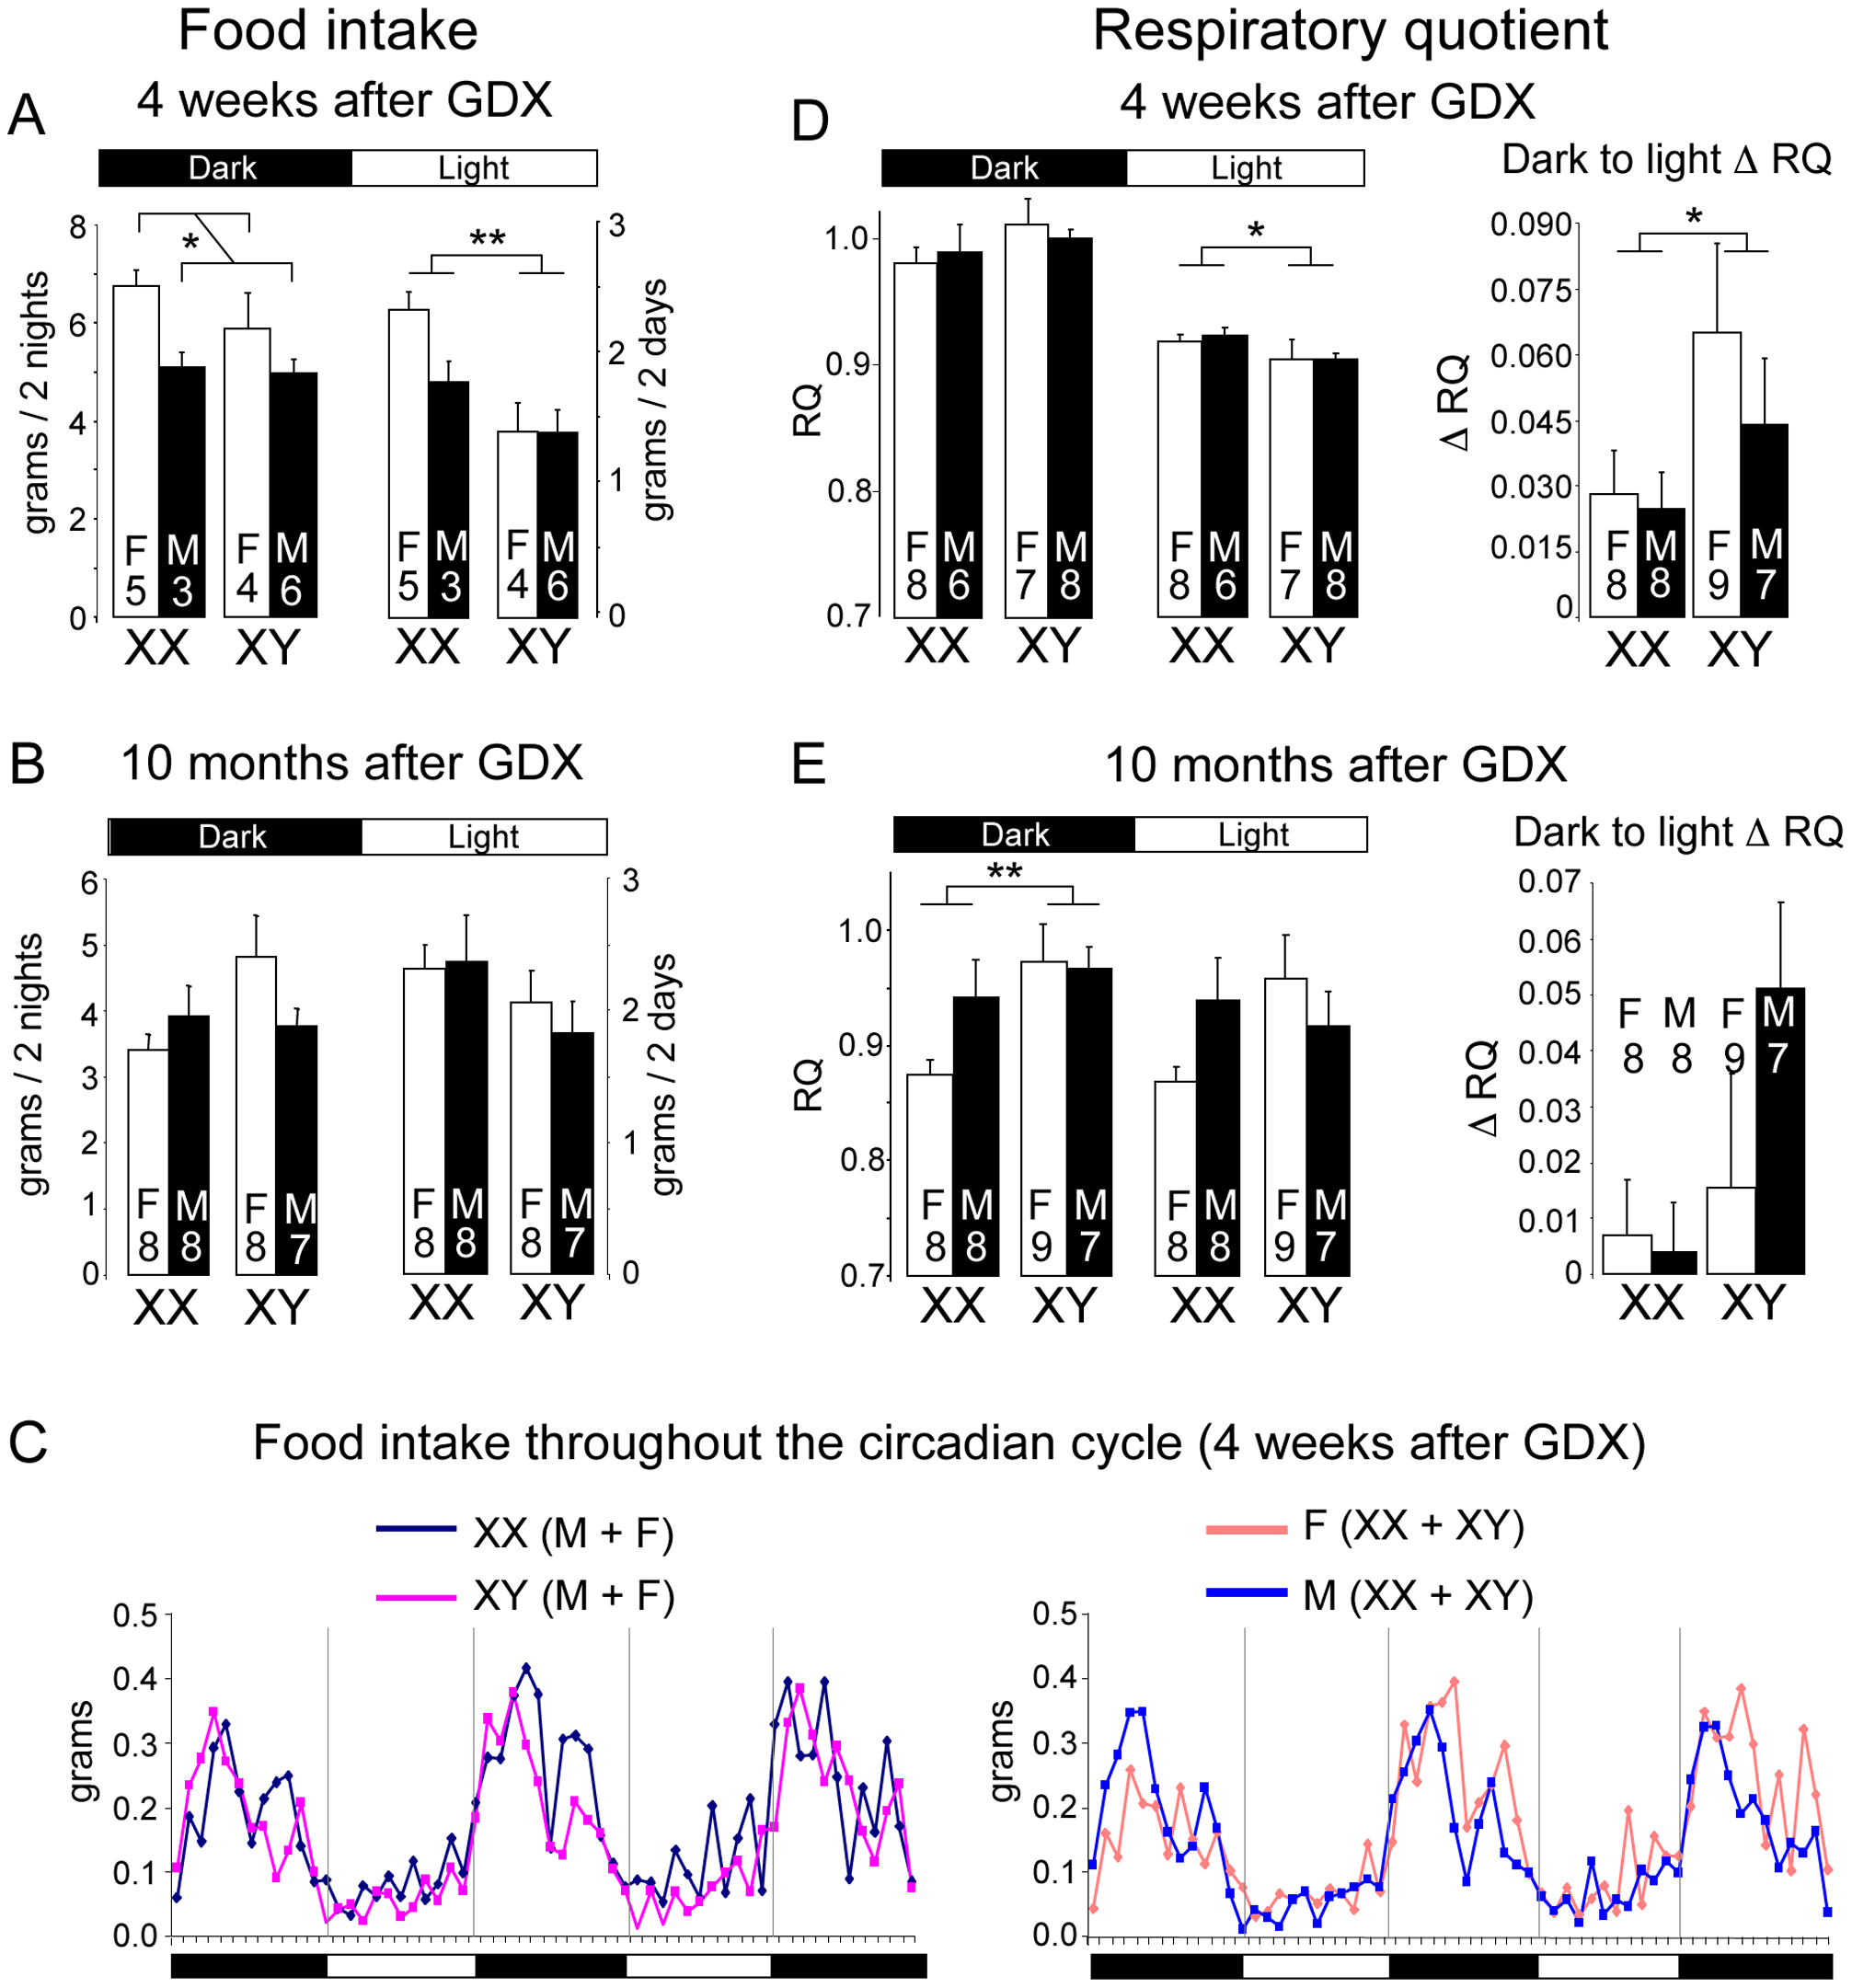 Altered food intake and RQ in XX versus XY mice.